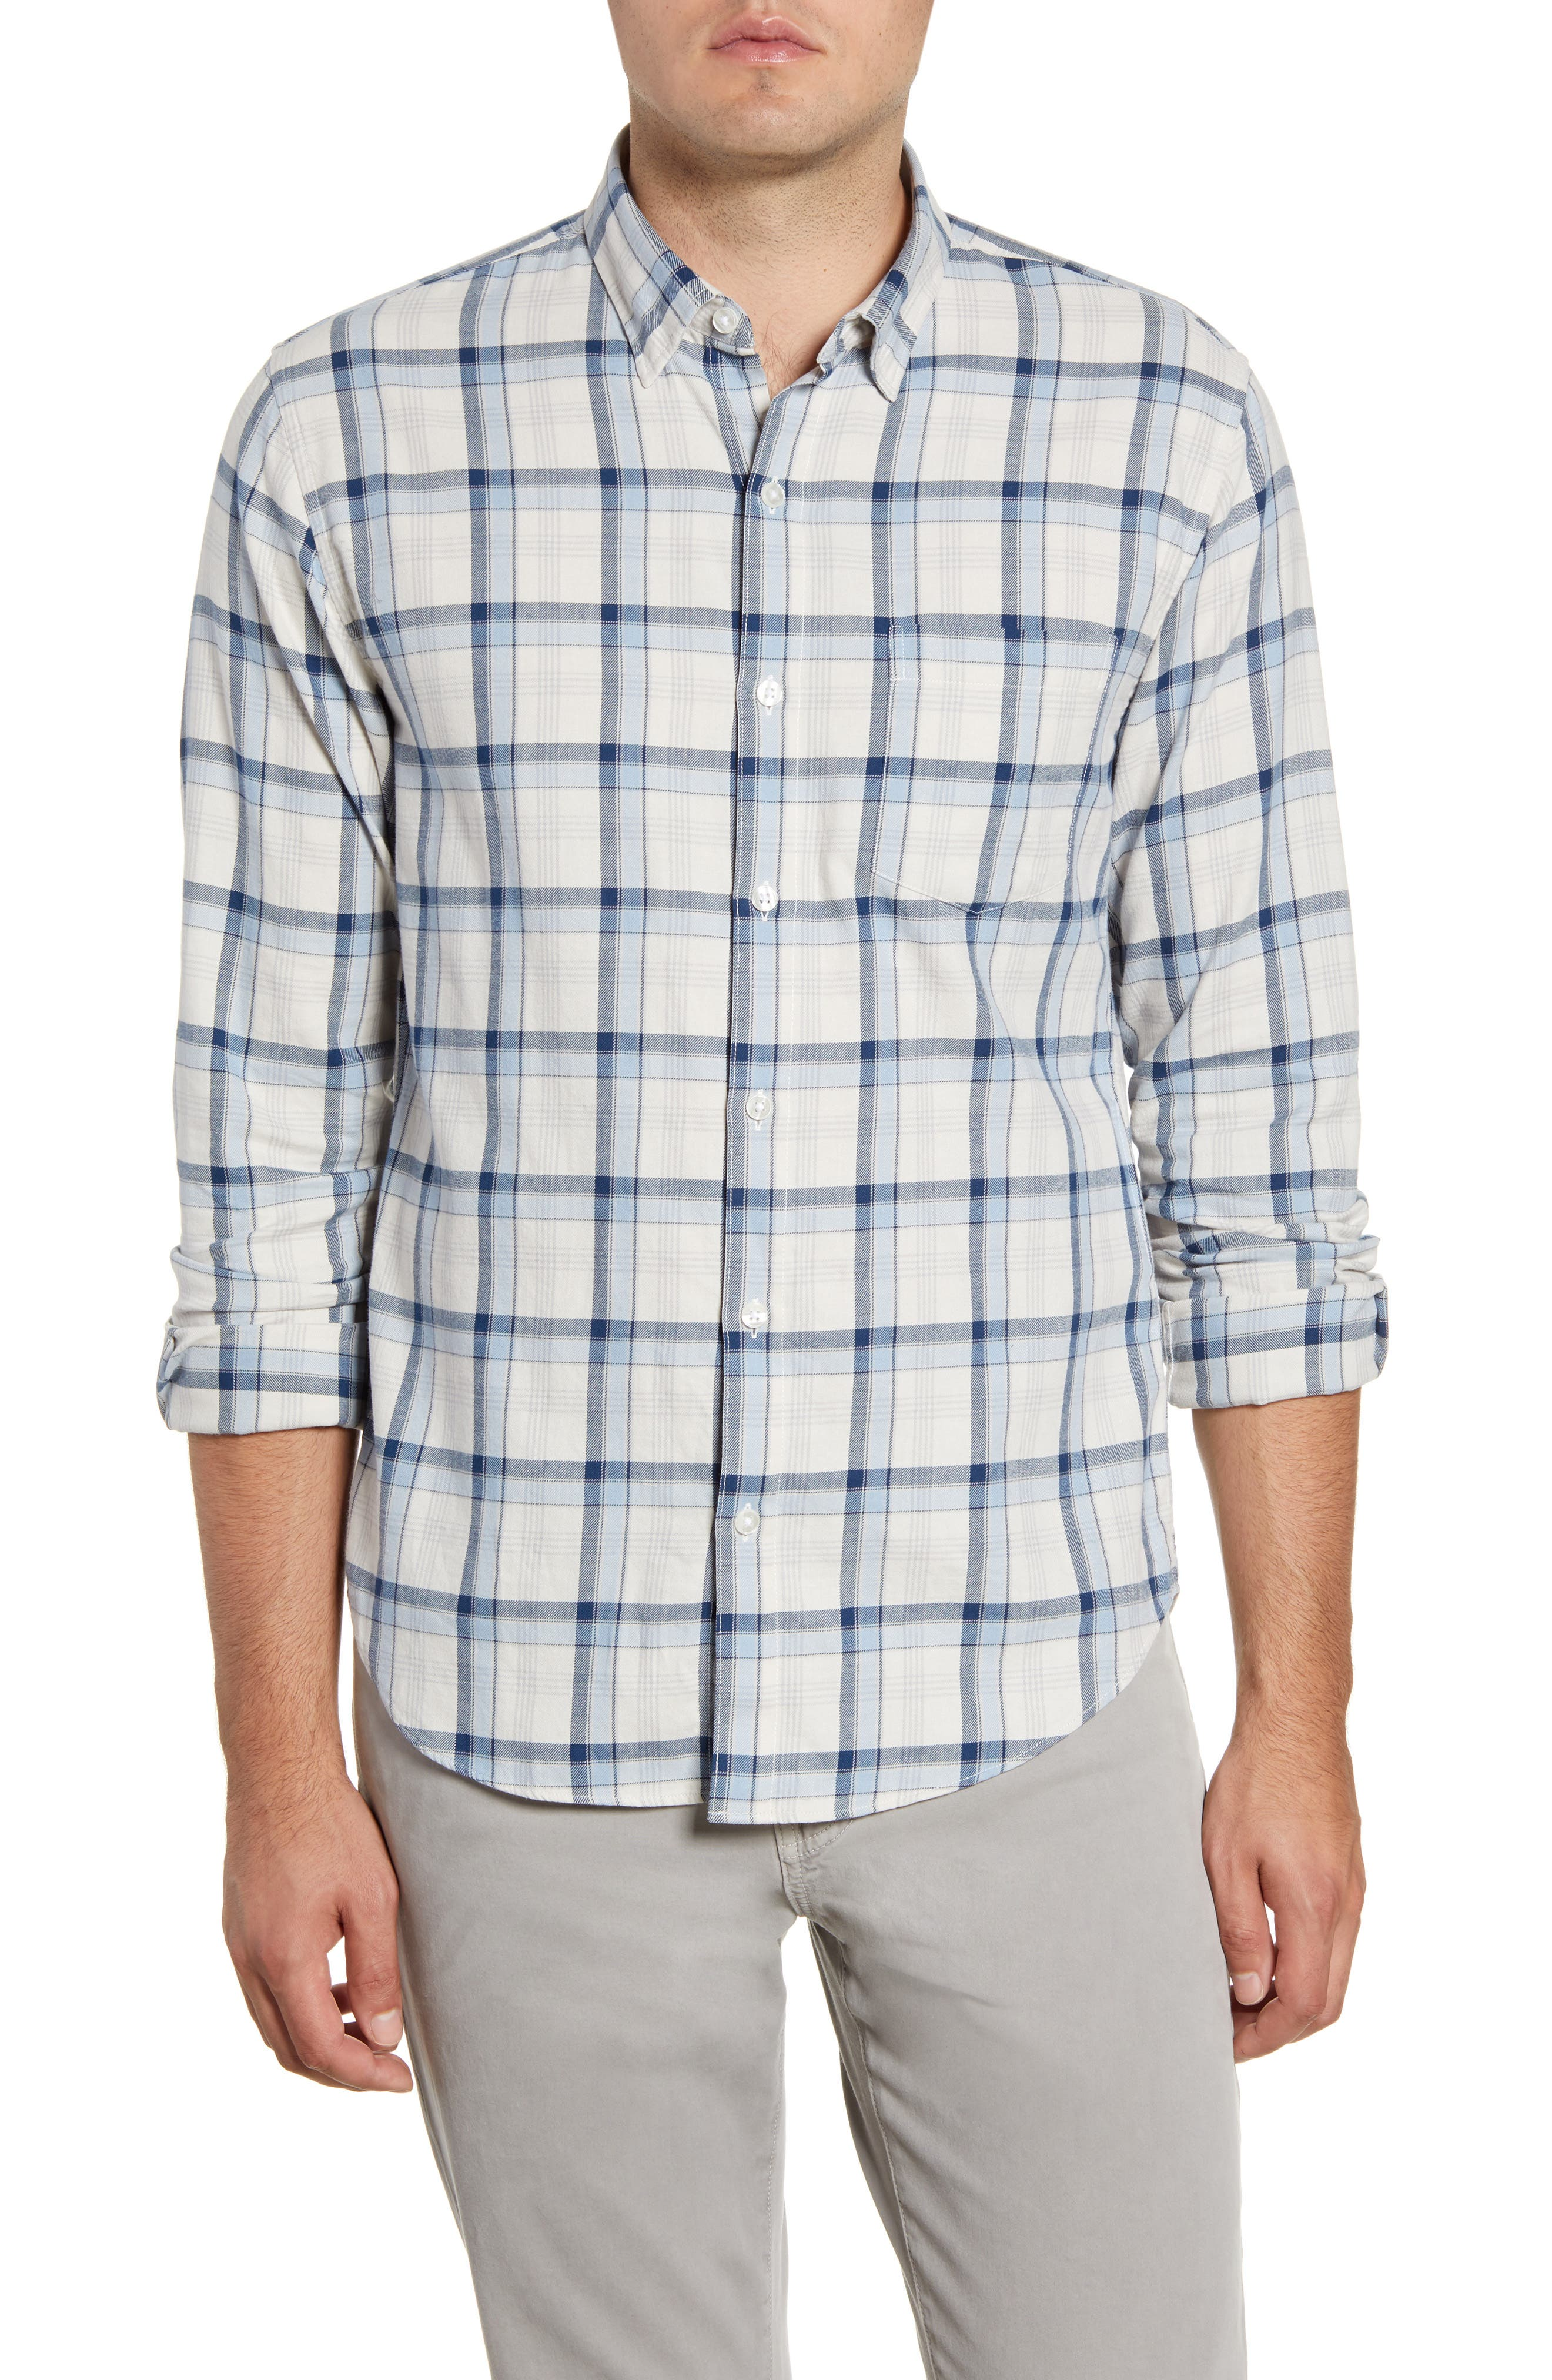 Soft color and texture comes from this brushed-cotton sport shirt patterned in a blue shadowy check. Style Name: Bonobos Slim Fit Plaid Button-Up Shirt. Style Number: 5791473. Available in stores.